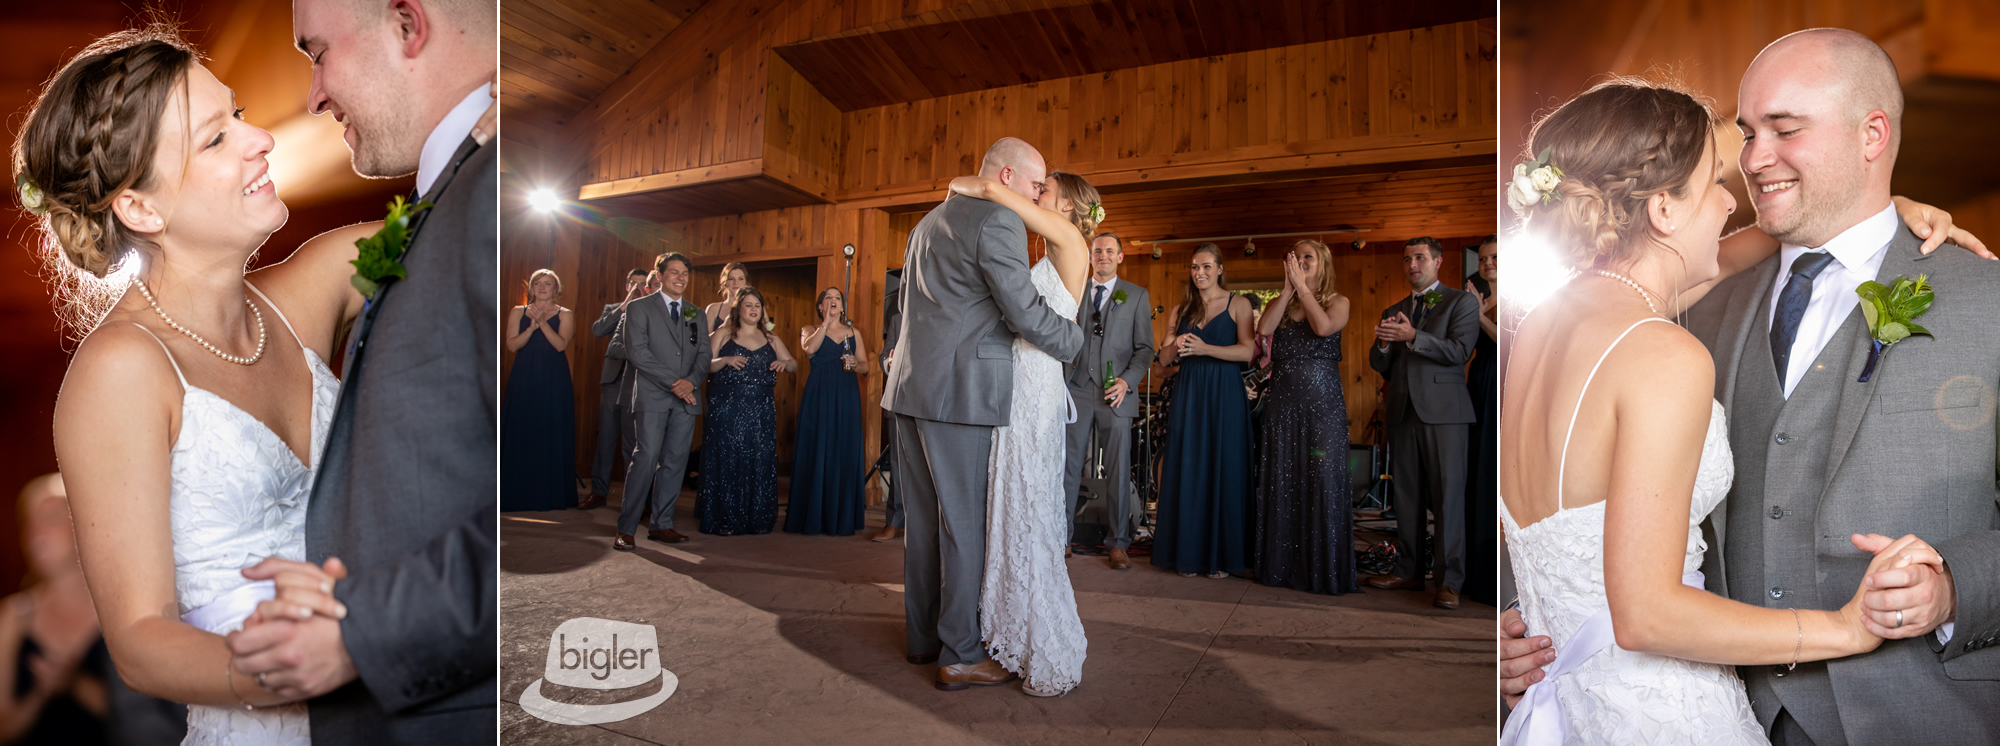 20180616_-_28_-_Lake_Placid_Wedding